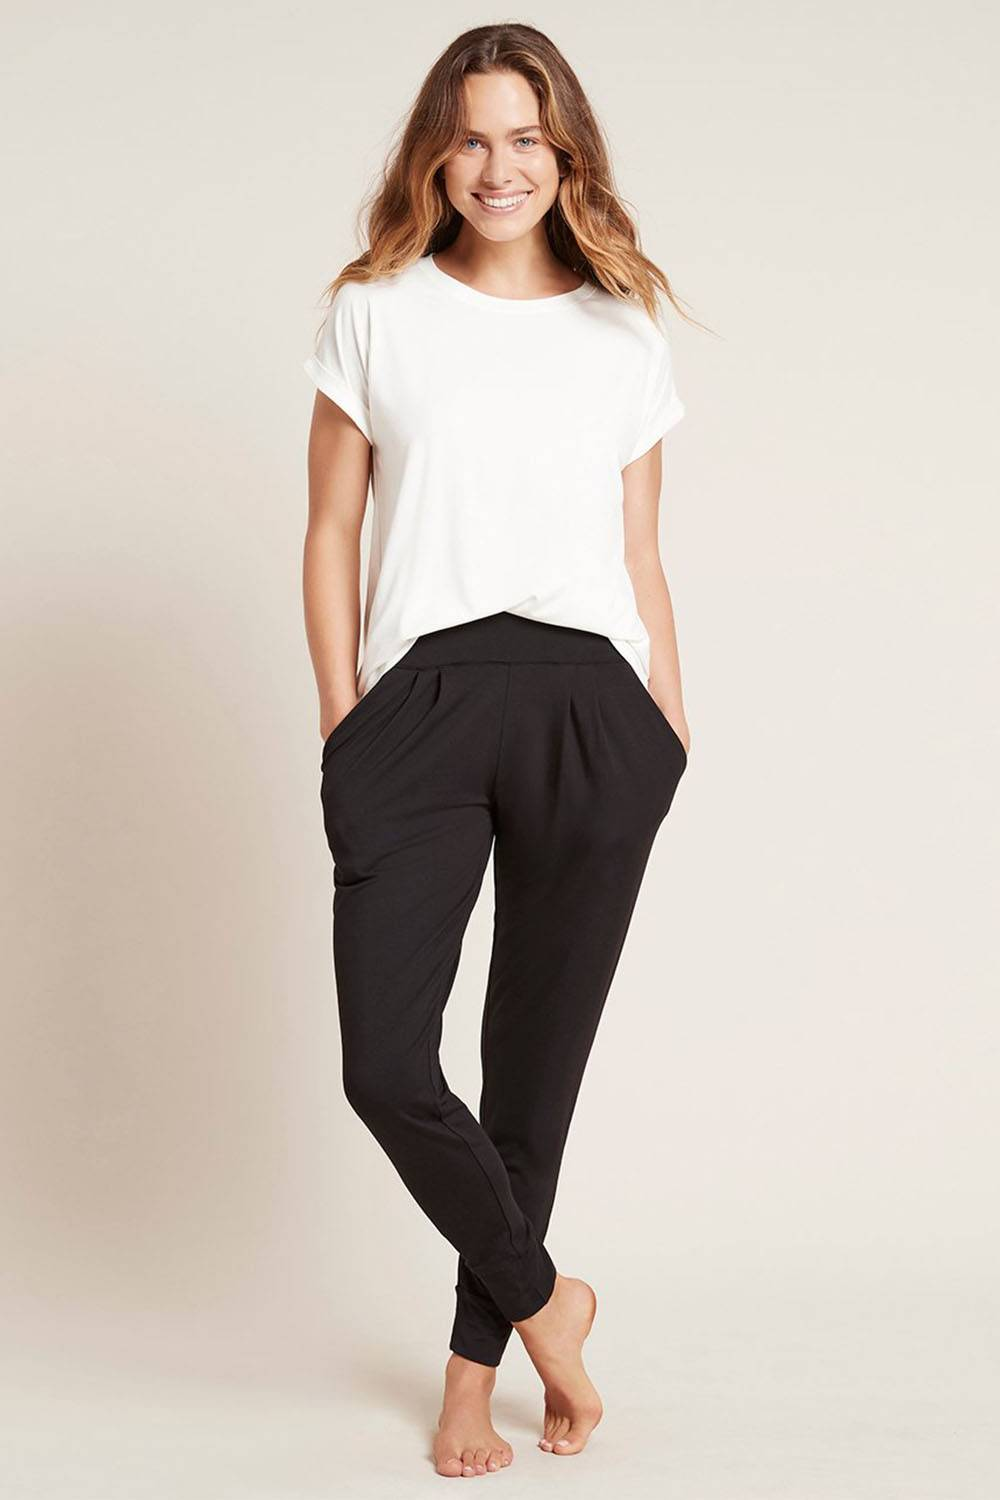 boody sustainable affordable loungewear australia